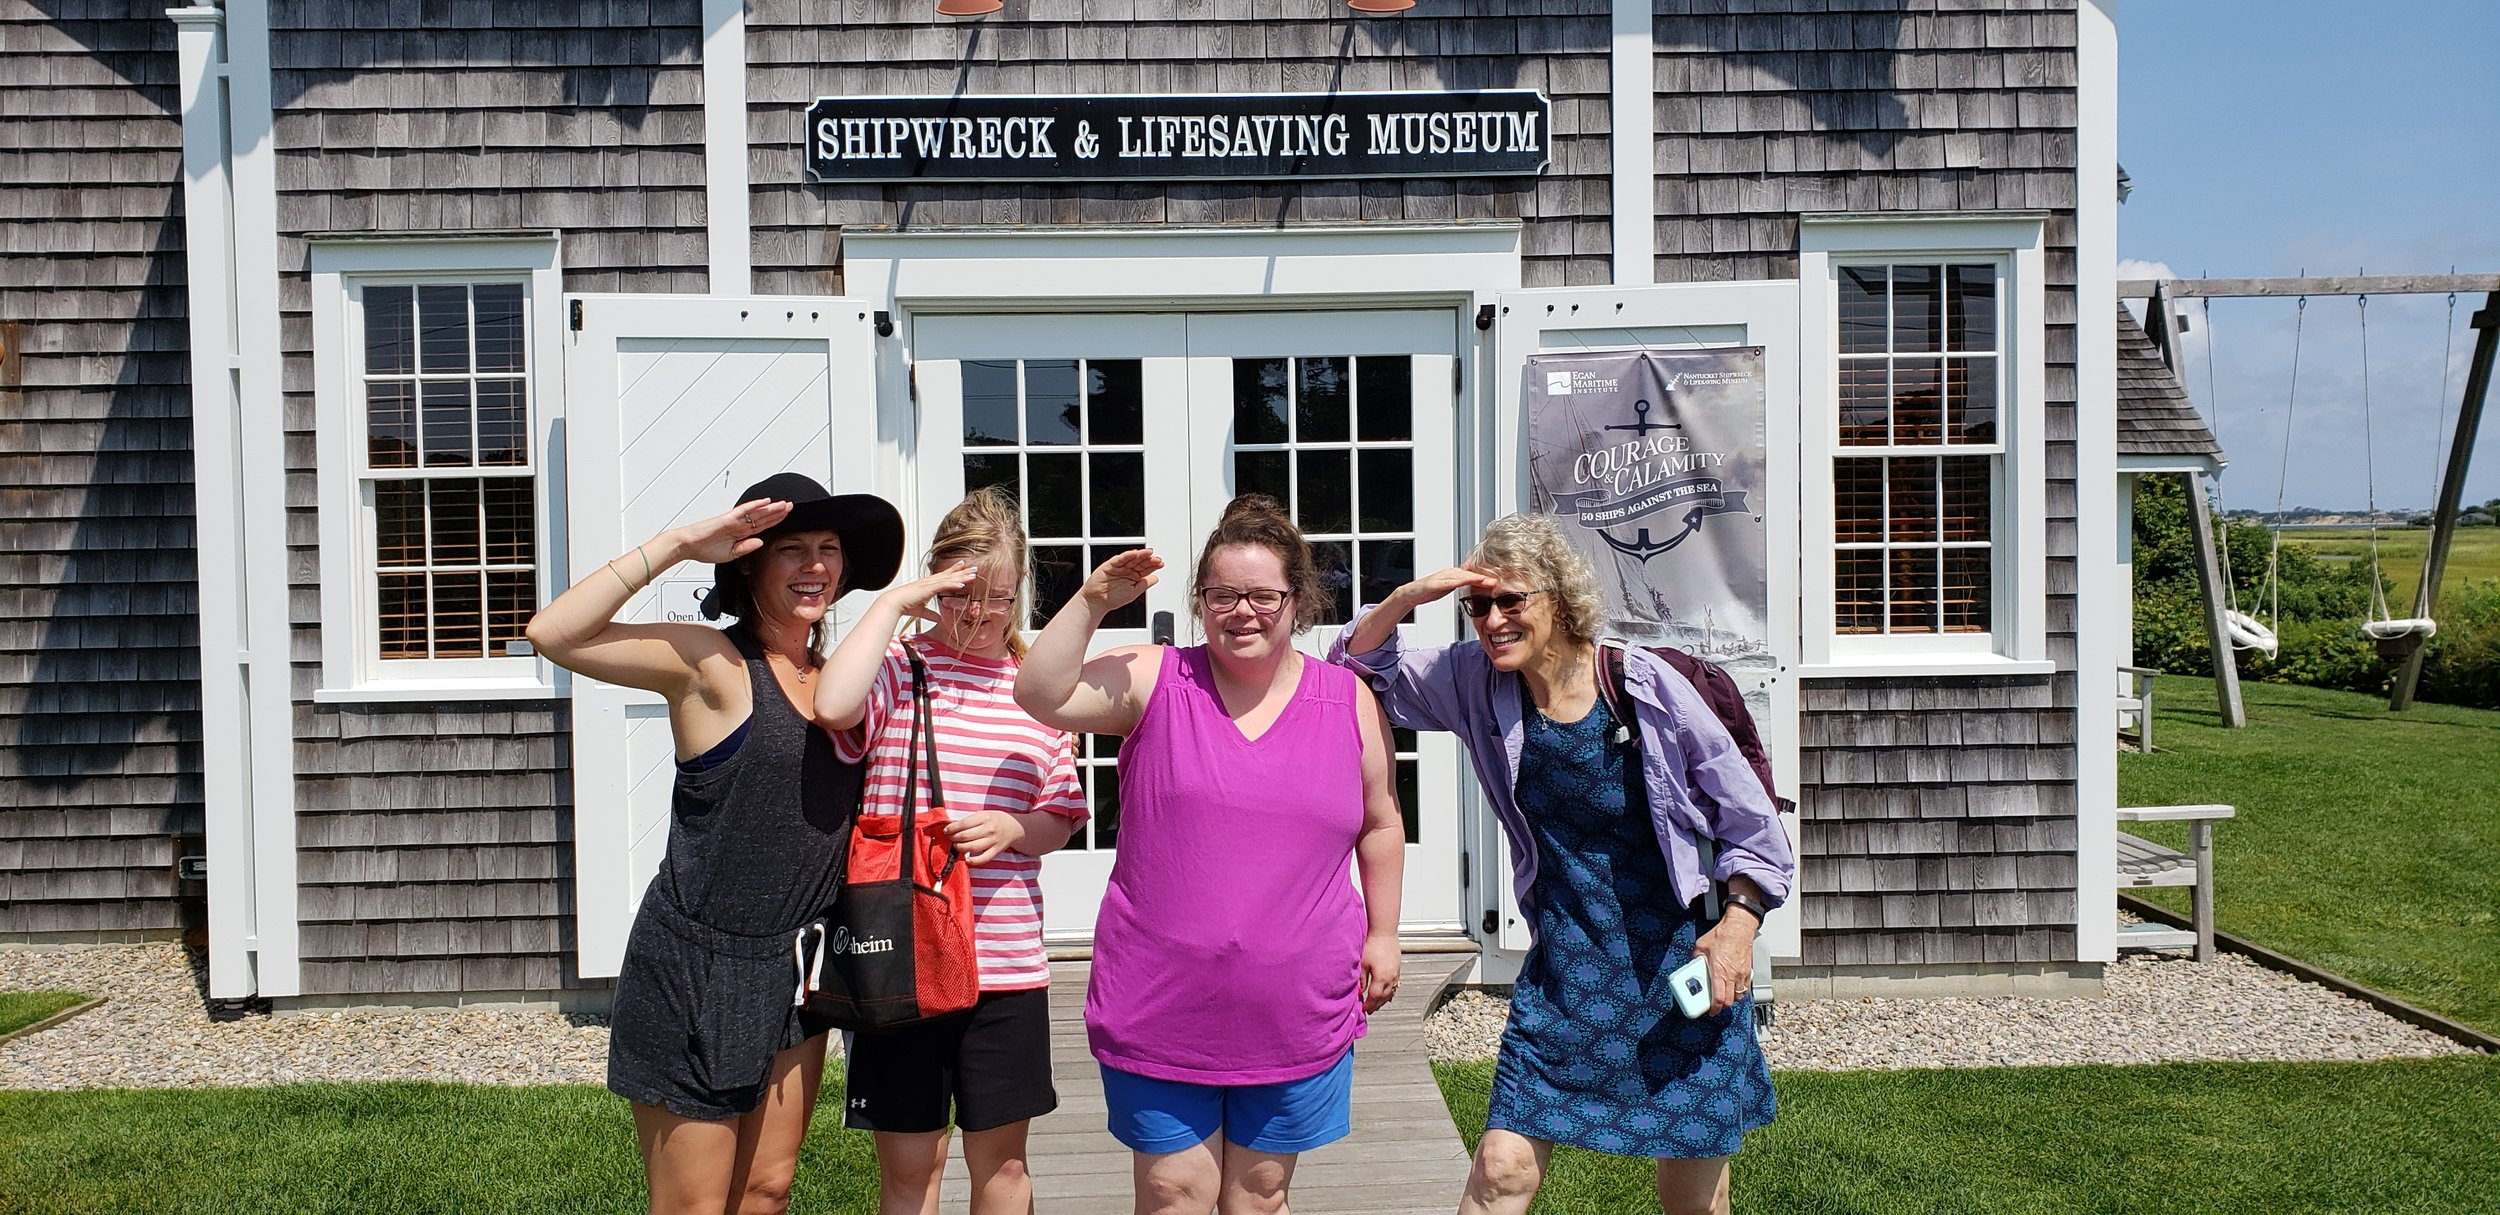 Outside the shipwreck museum